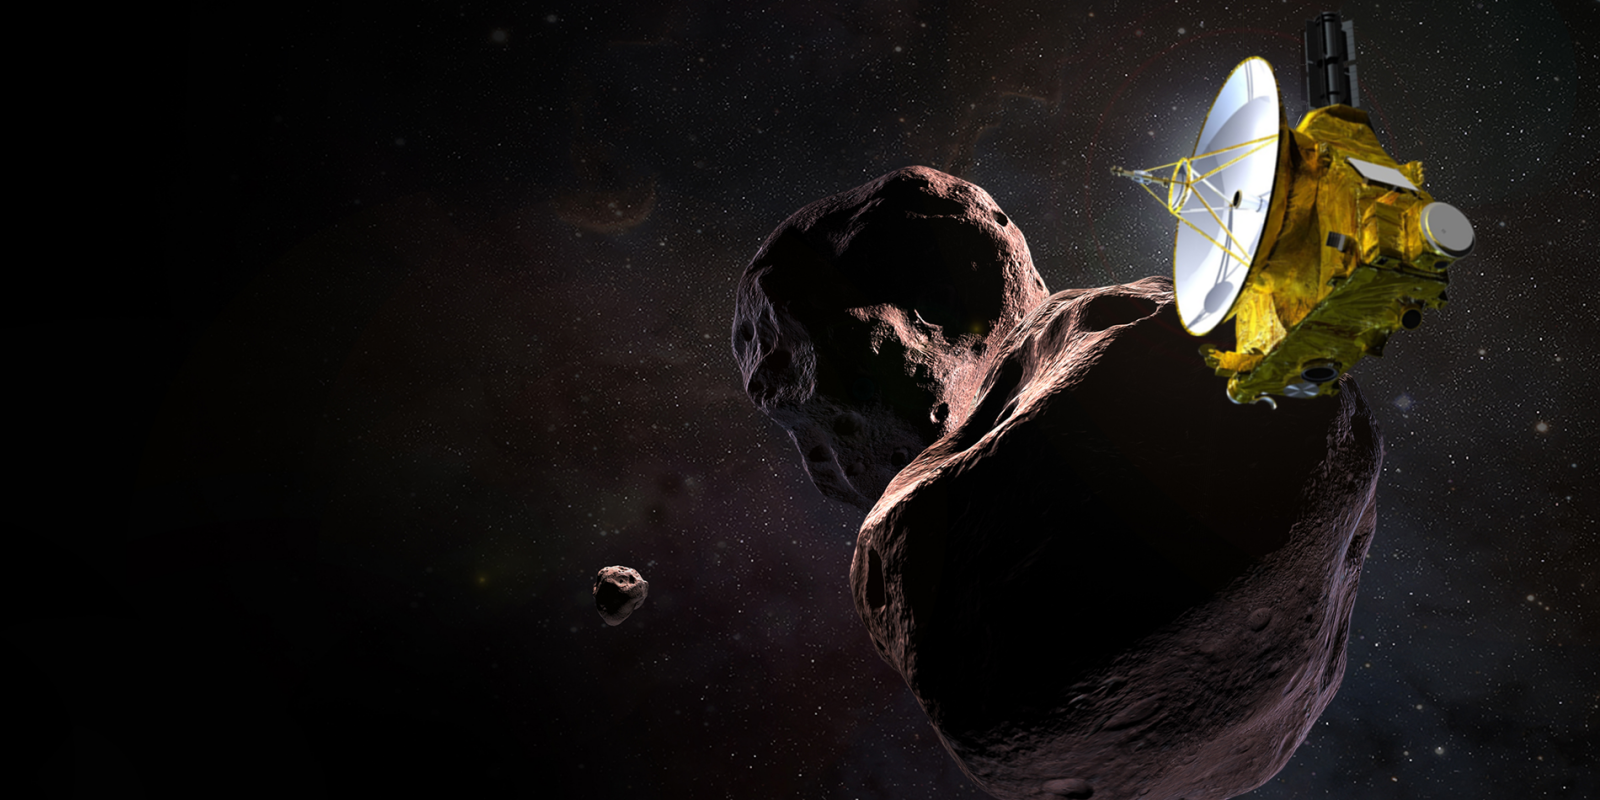 The New Horizons spacecraft is headed toward its second target - the Kuiper Belt object Ultima Thule. Image Credit NASA / JPL / JHUAPL